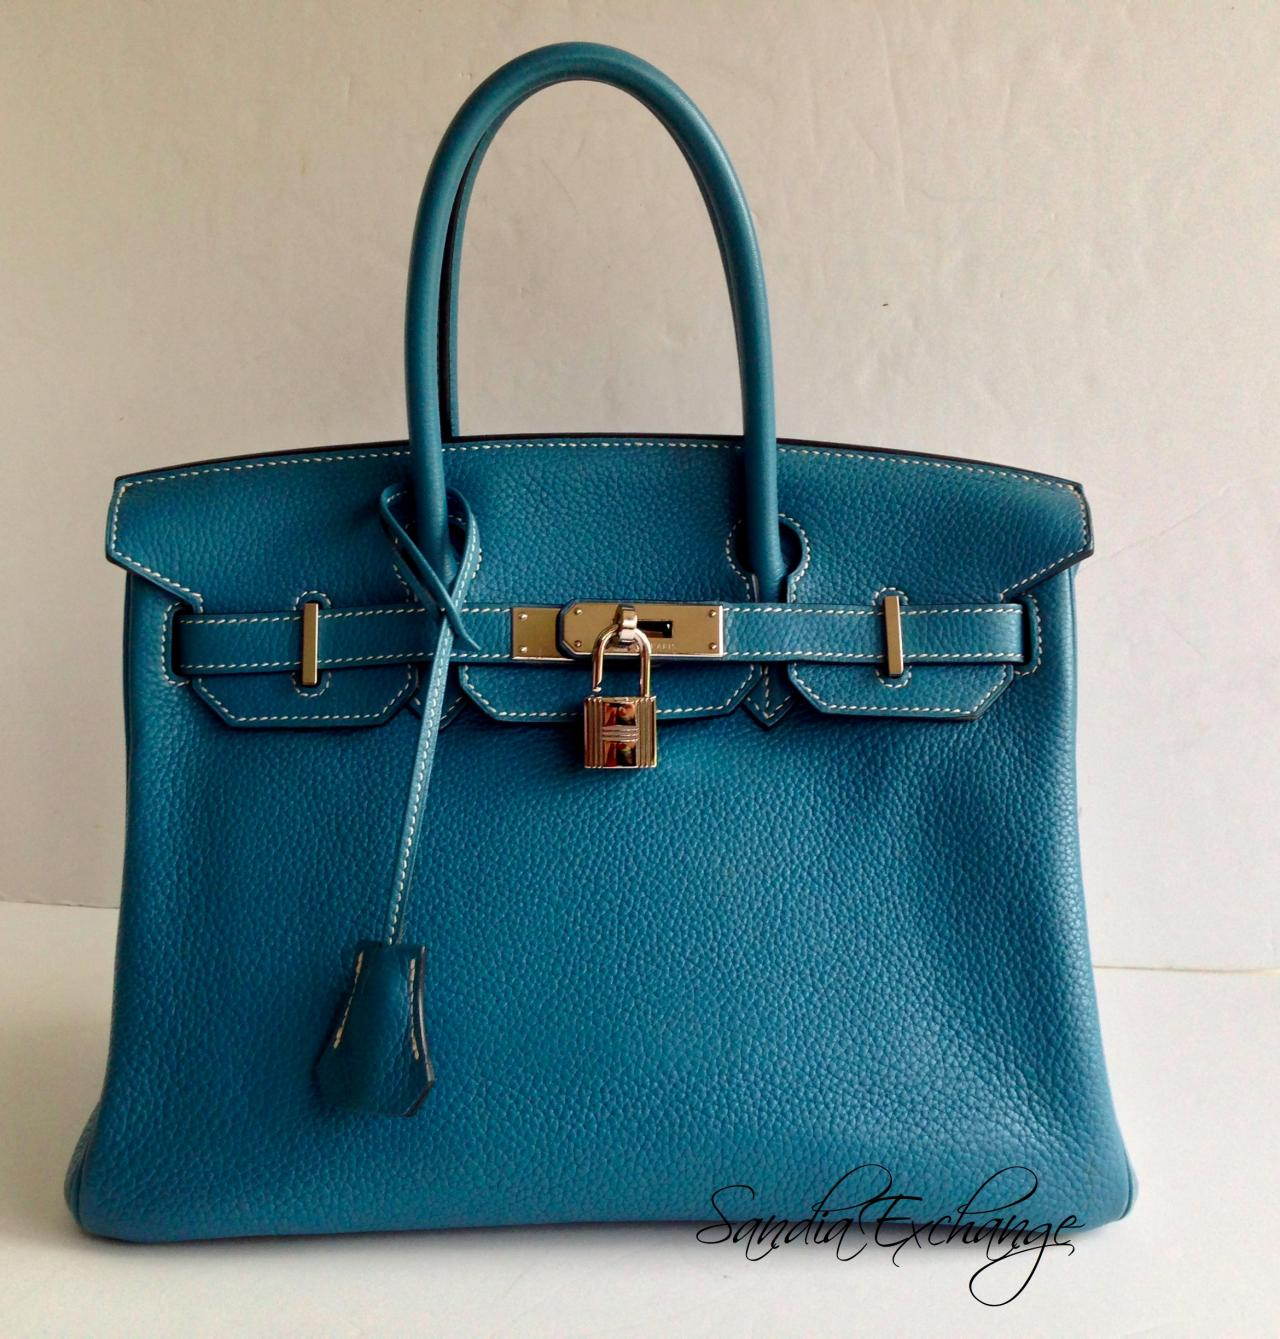 h and m hermes handbags - Birkin Gallery